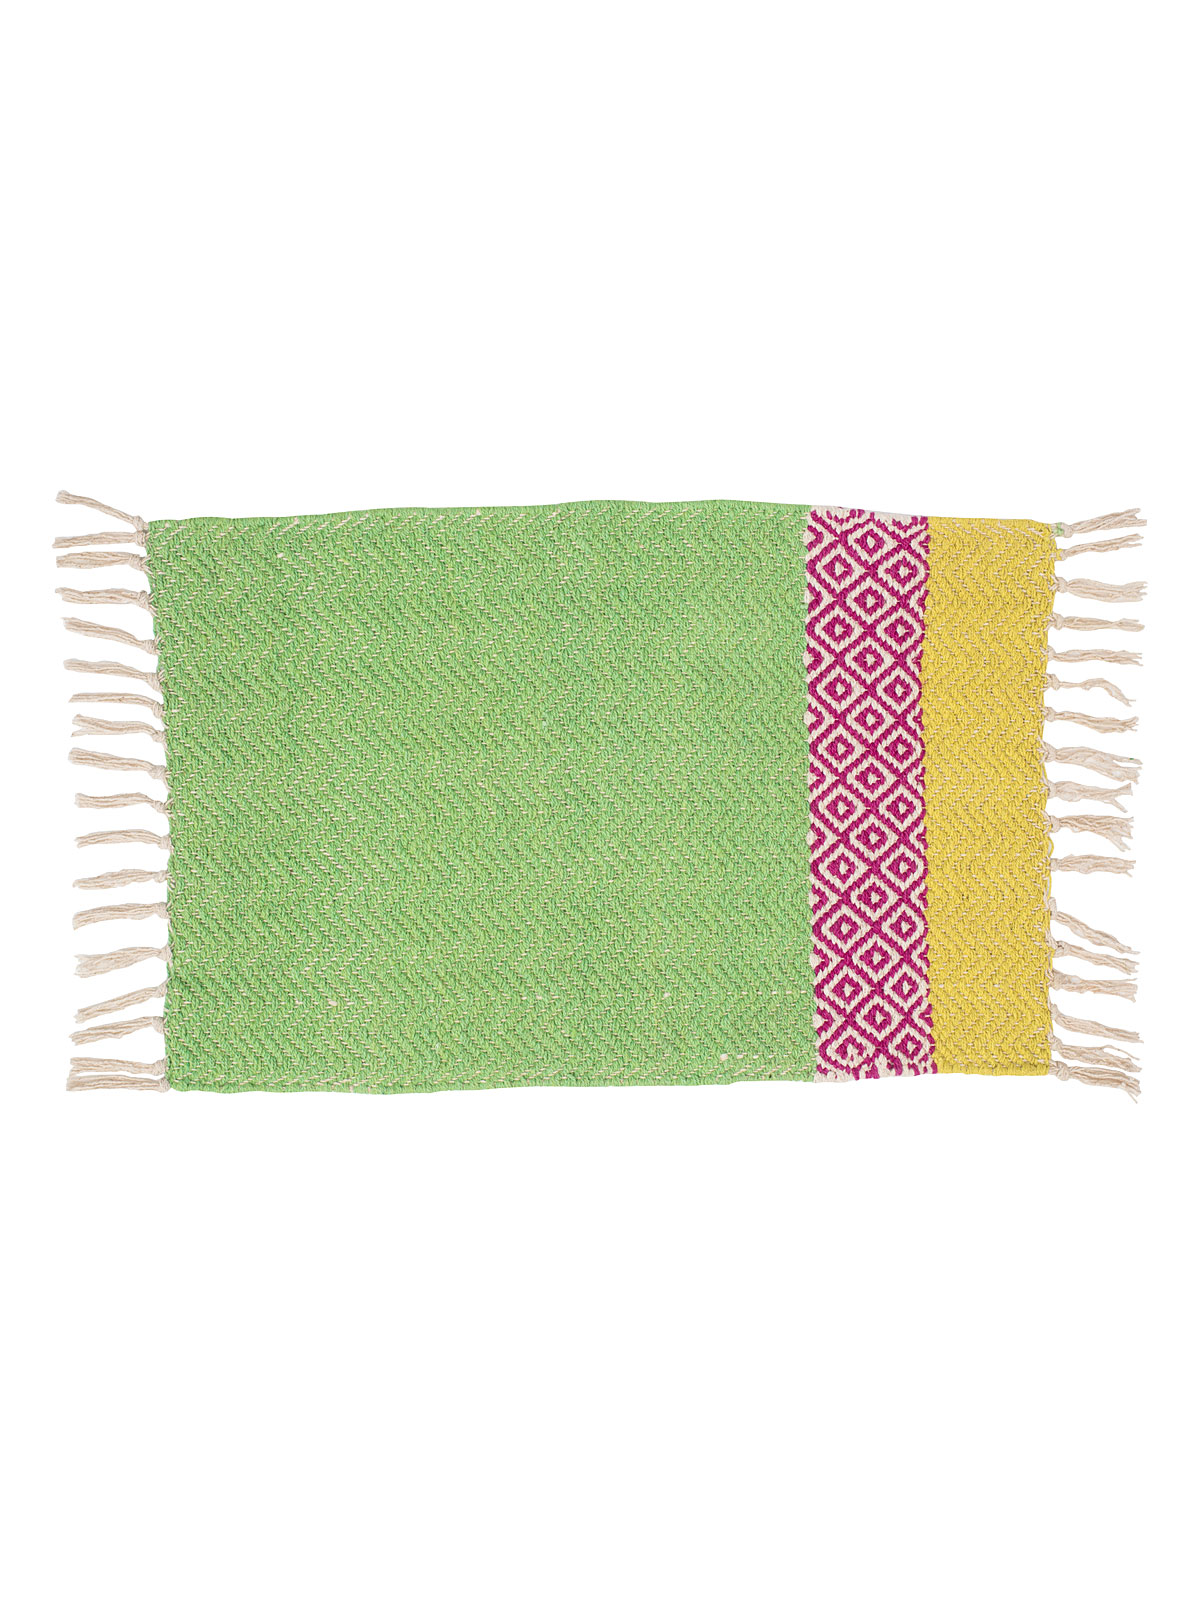 Watermelon Weave Placemat Set of 4